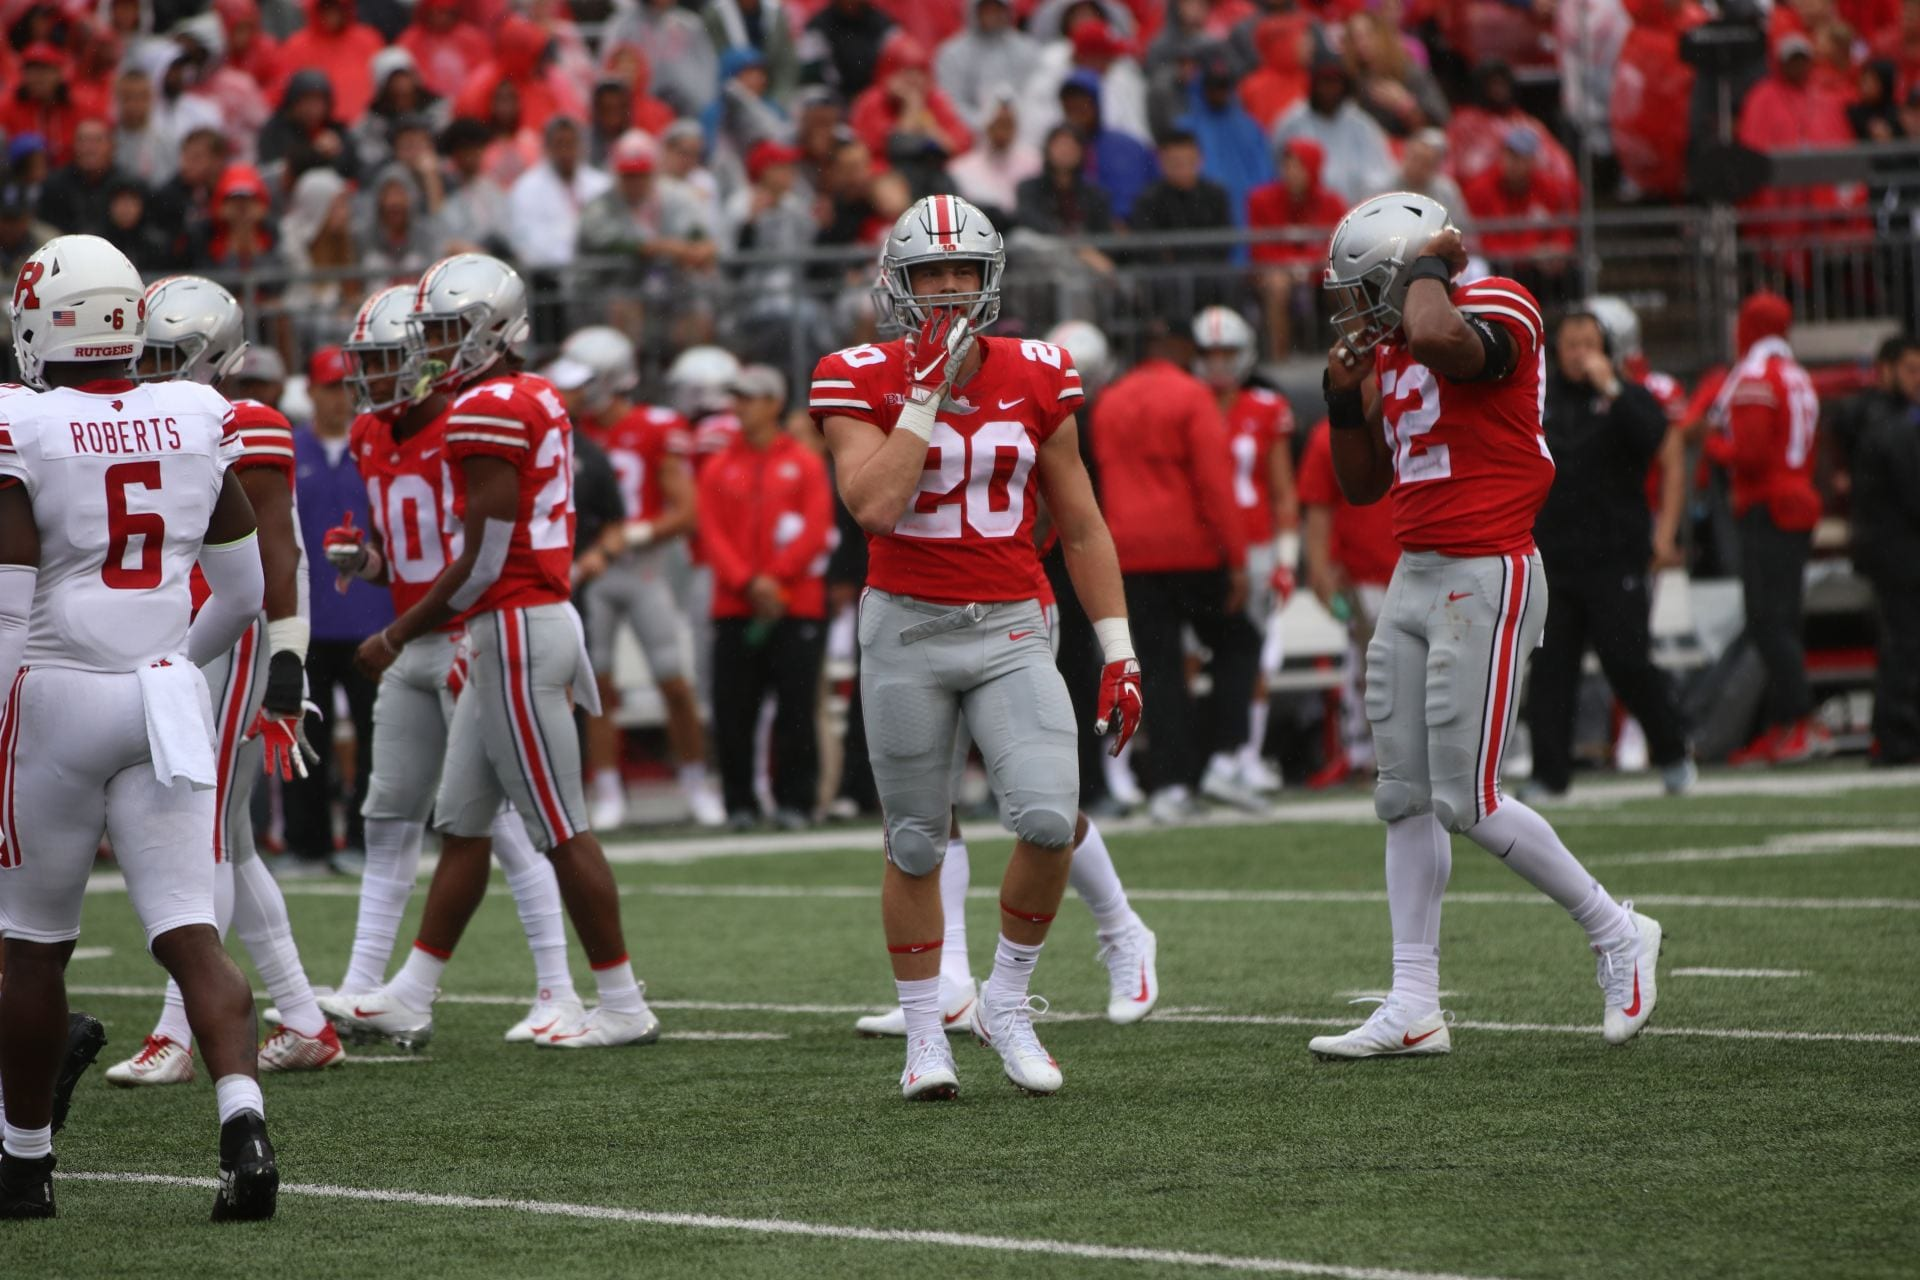 Ohio State Score Football Mcsorley Brings Ohio State Familiar Yet Challenging